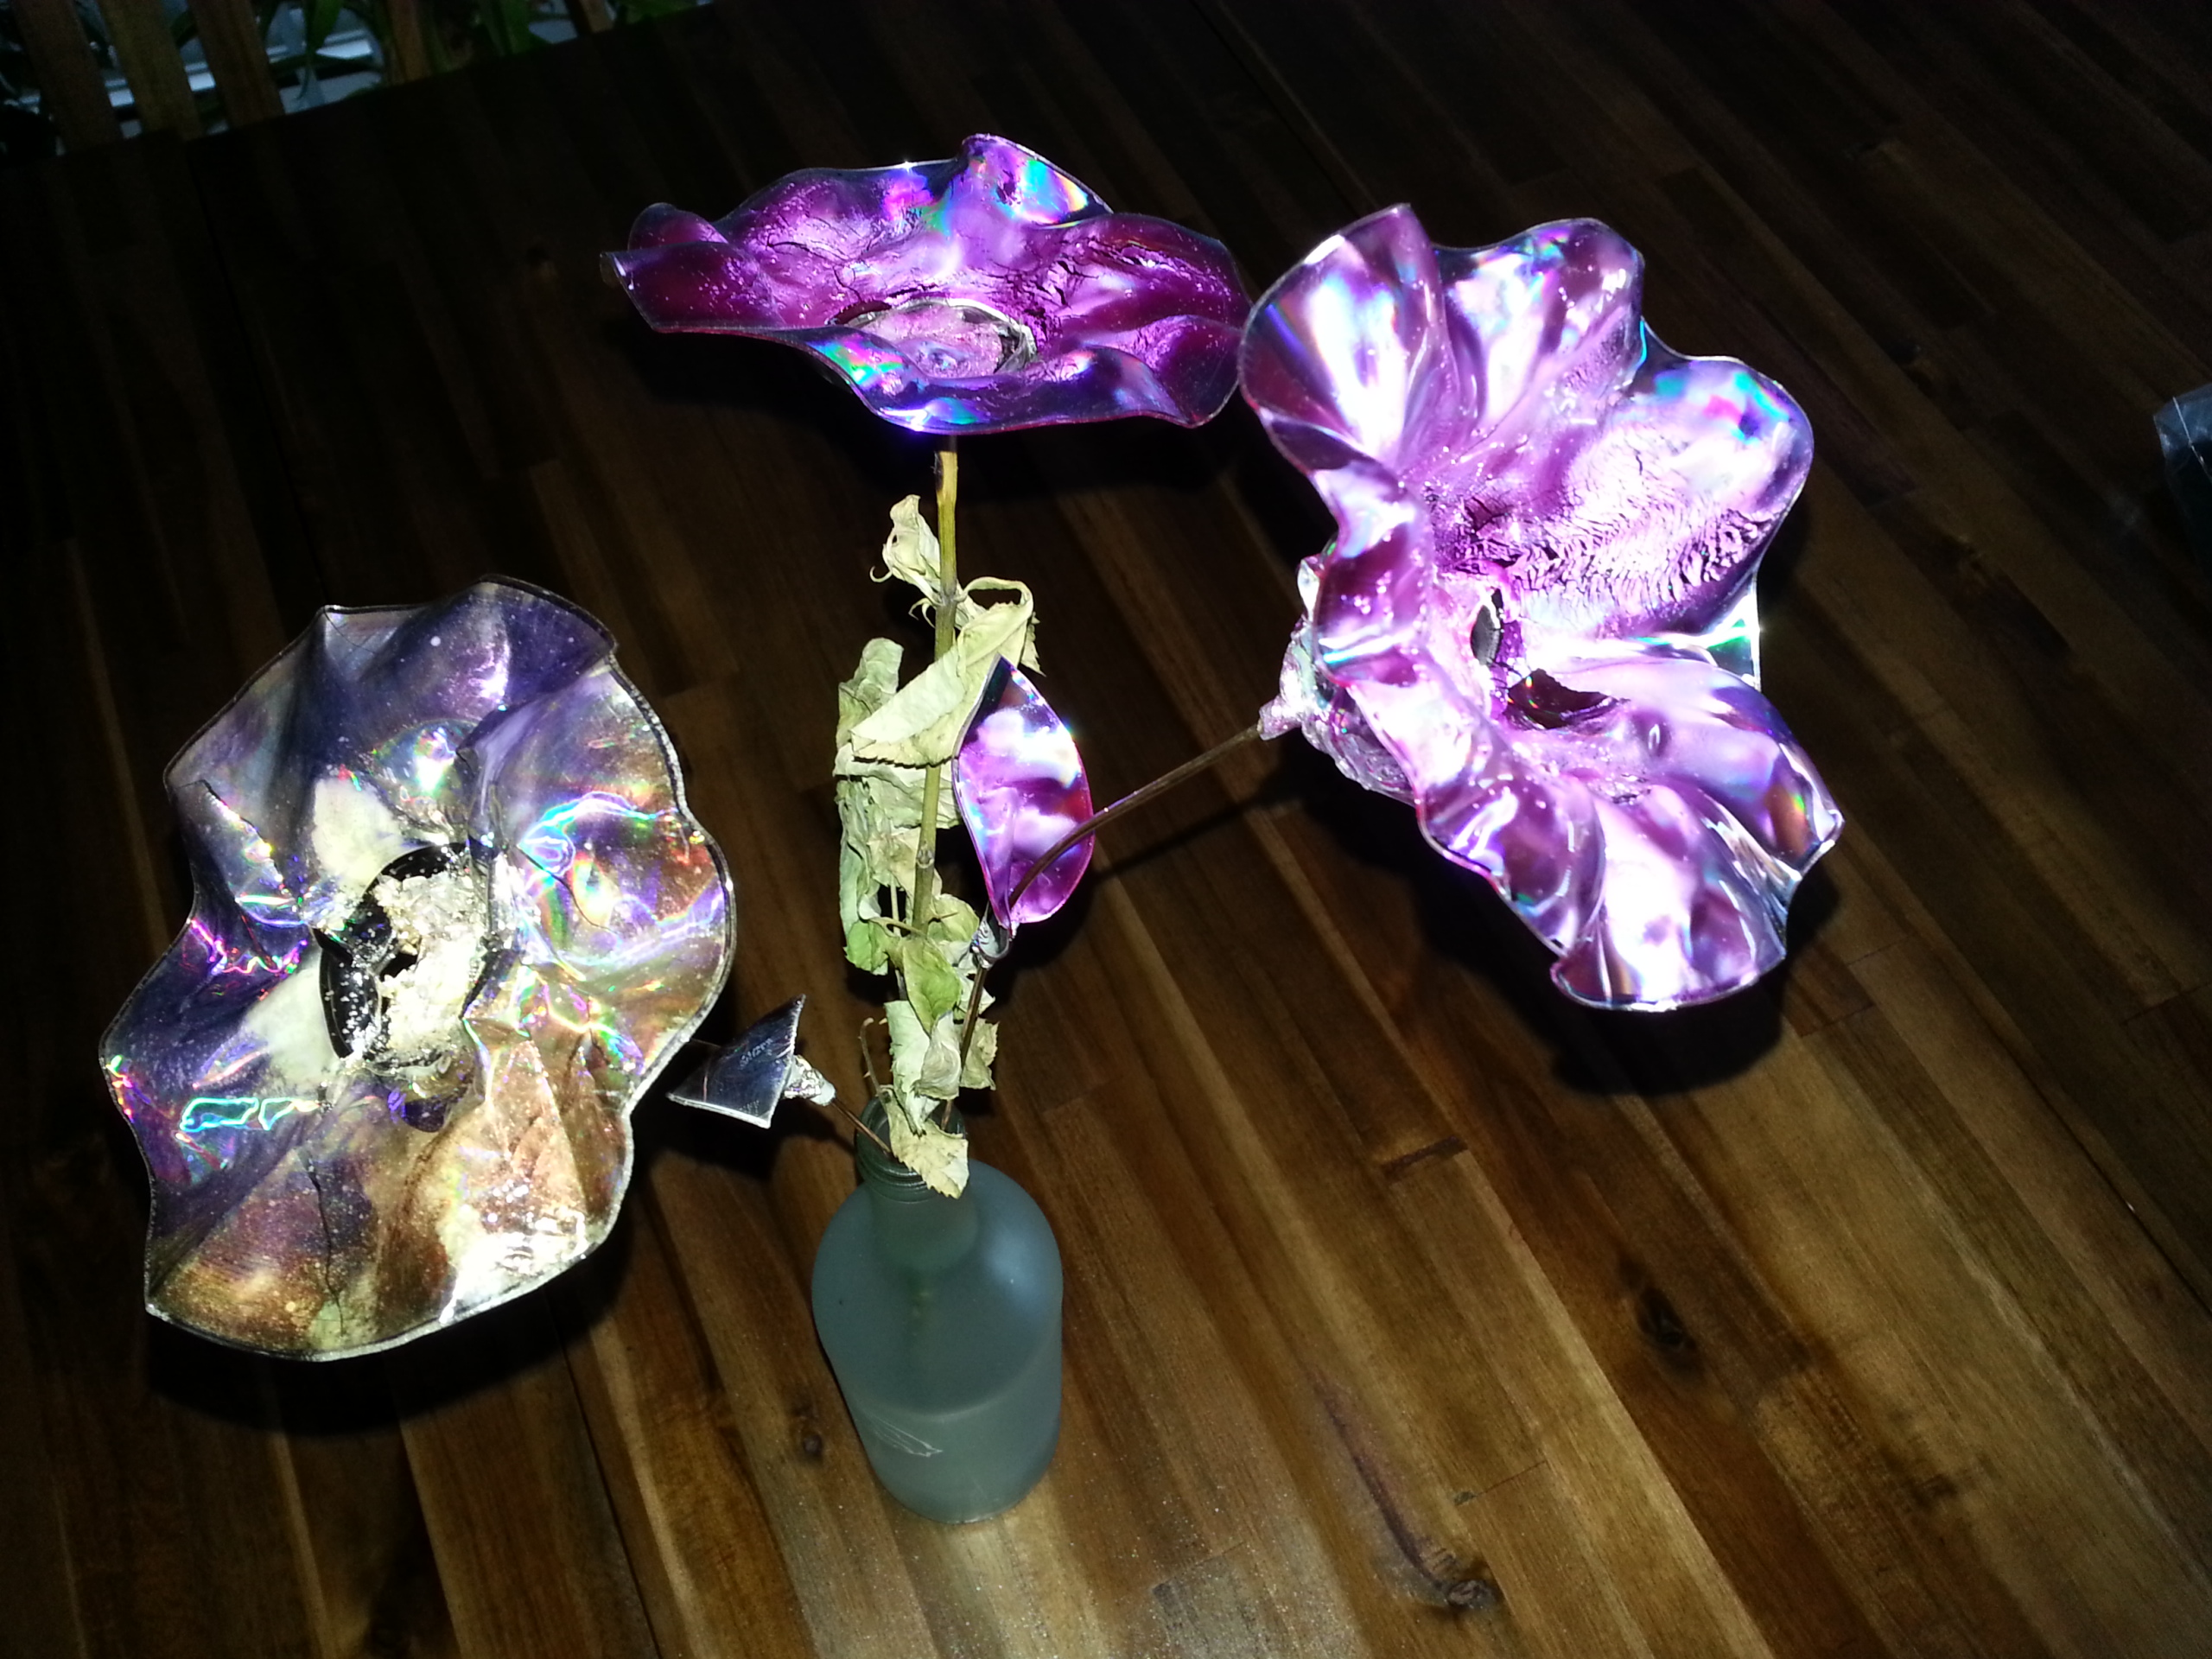 Picture of JoY's Rawcopiednature Eternal Beauty Flowers From Upcycled CDs and DVDs